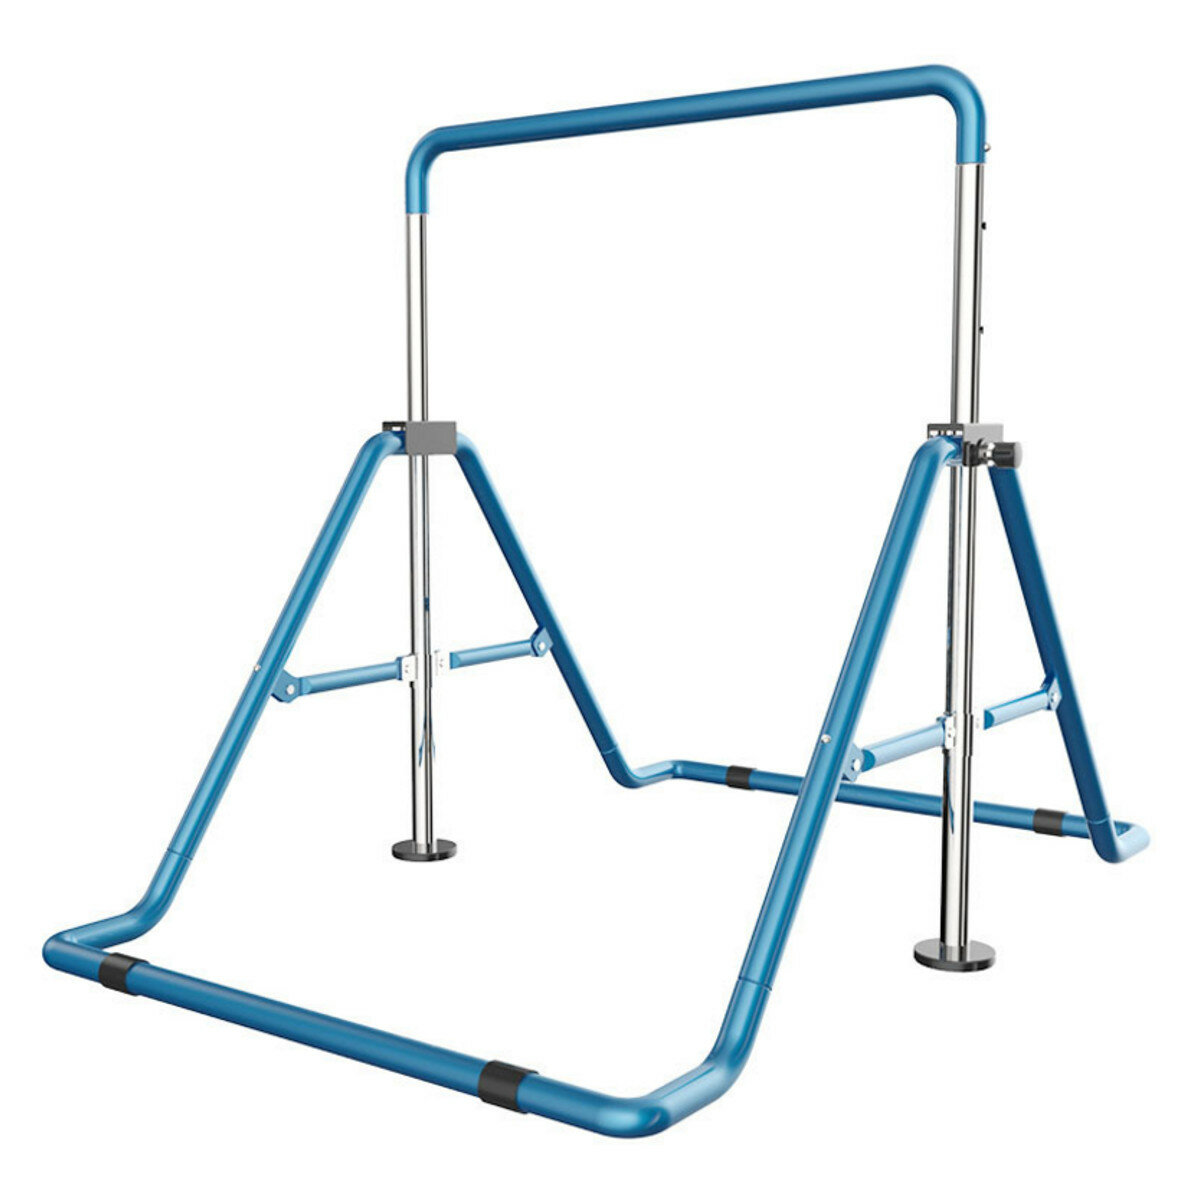 hight resolution of expandable kids gymnastic bars asymmetric gym kid bar exercise tools junior training indoor play cod